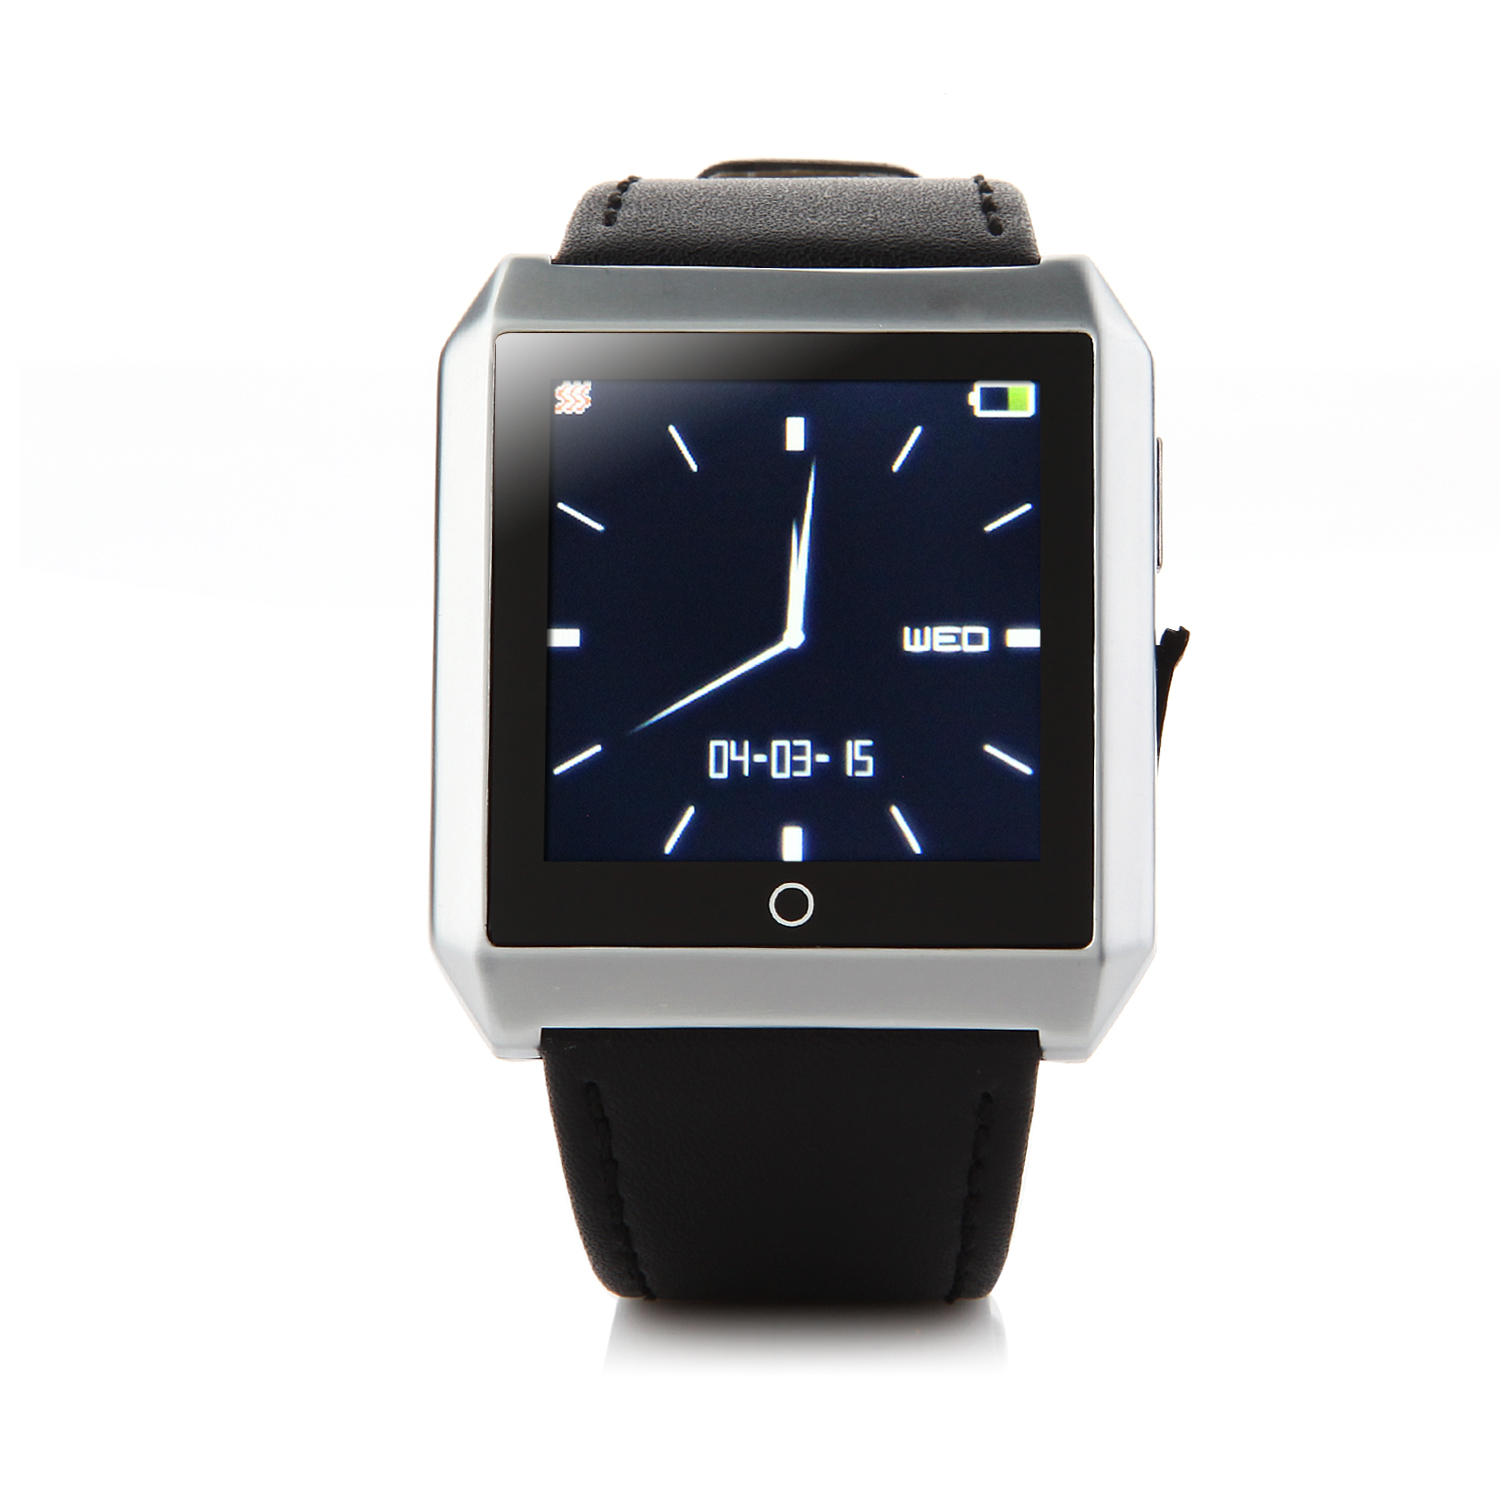 RWATCH R6S Bluetooth Smart Remote Control Watch for iOS Android Smartphones Silver